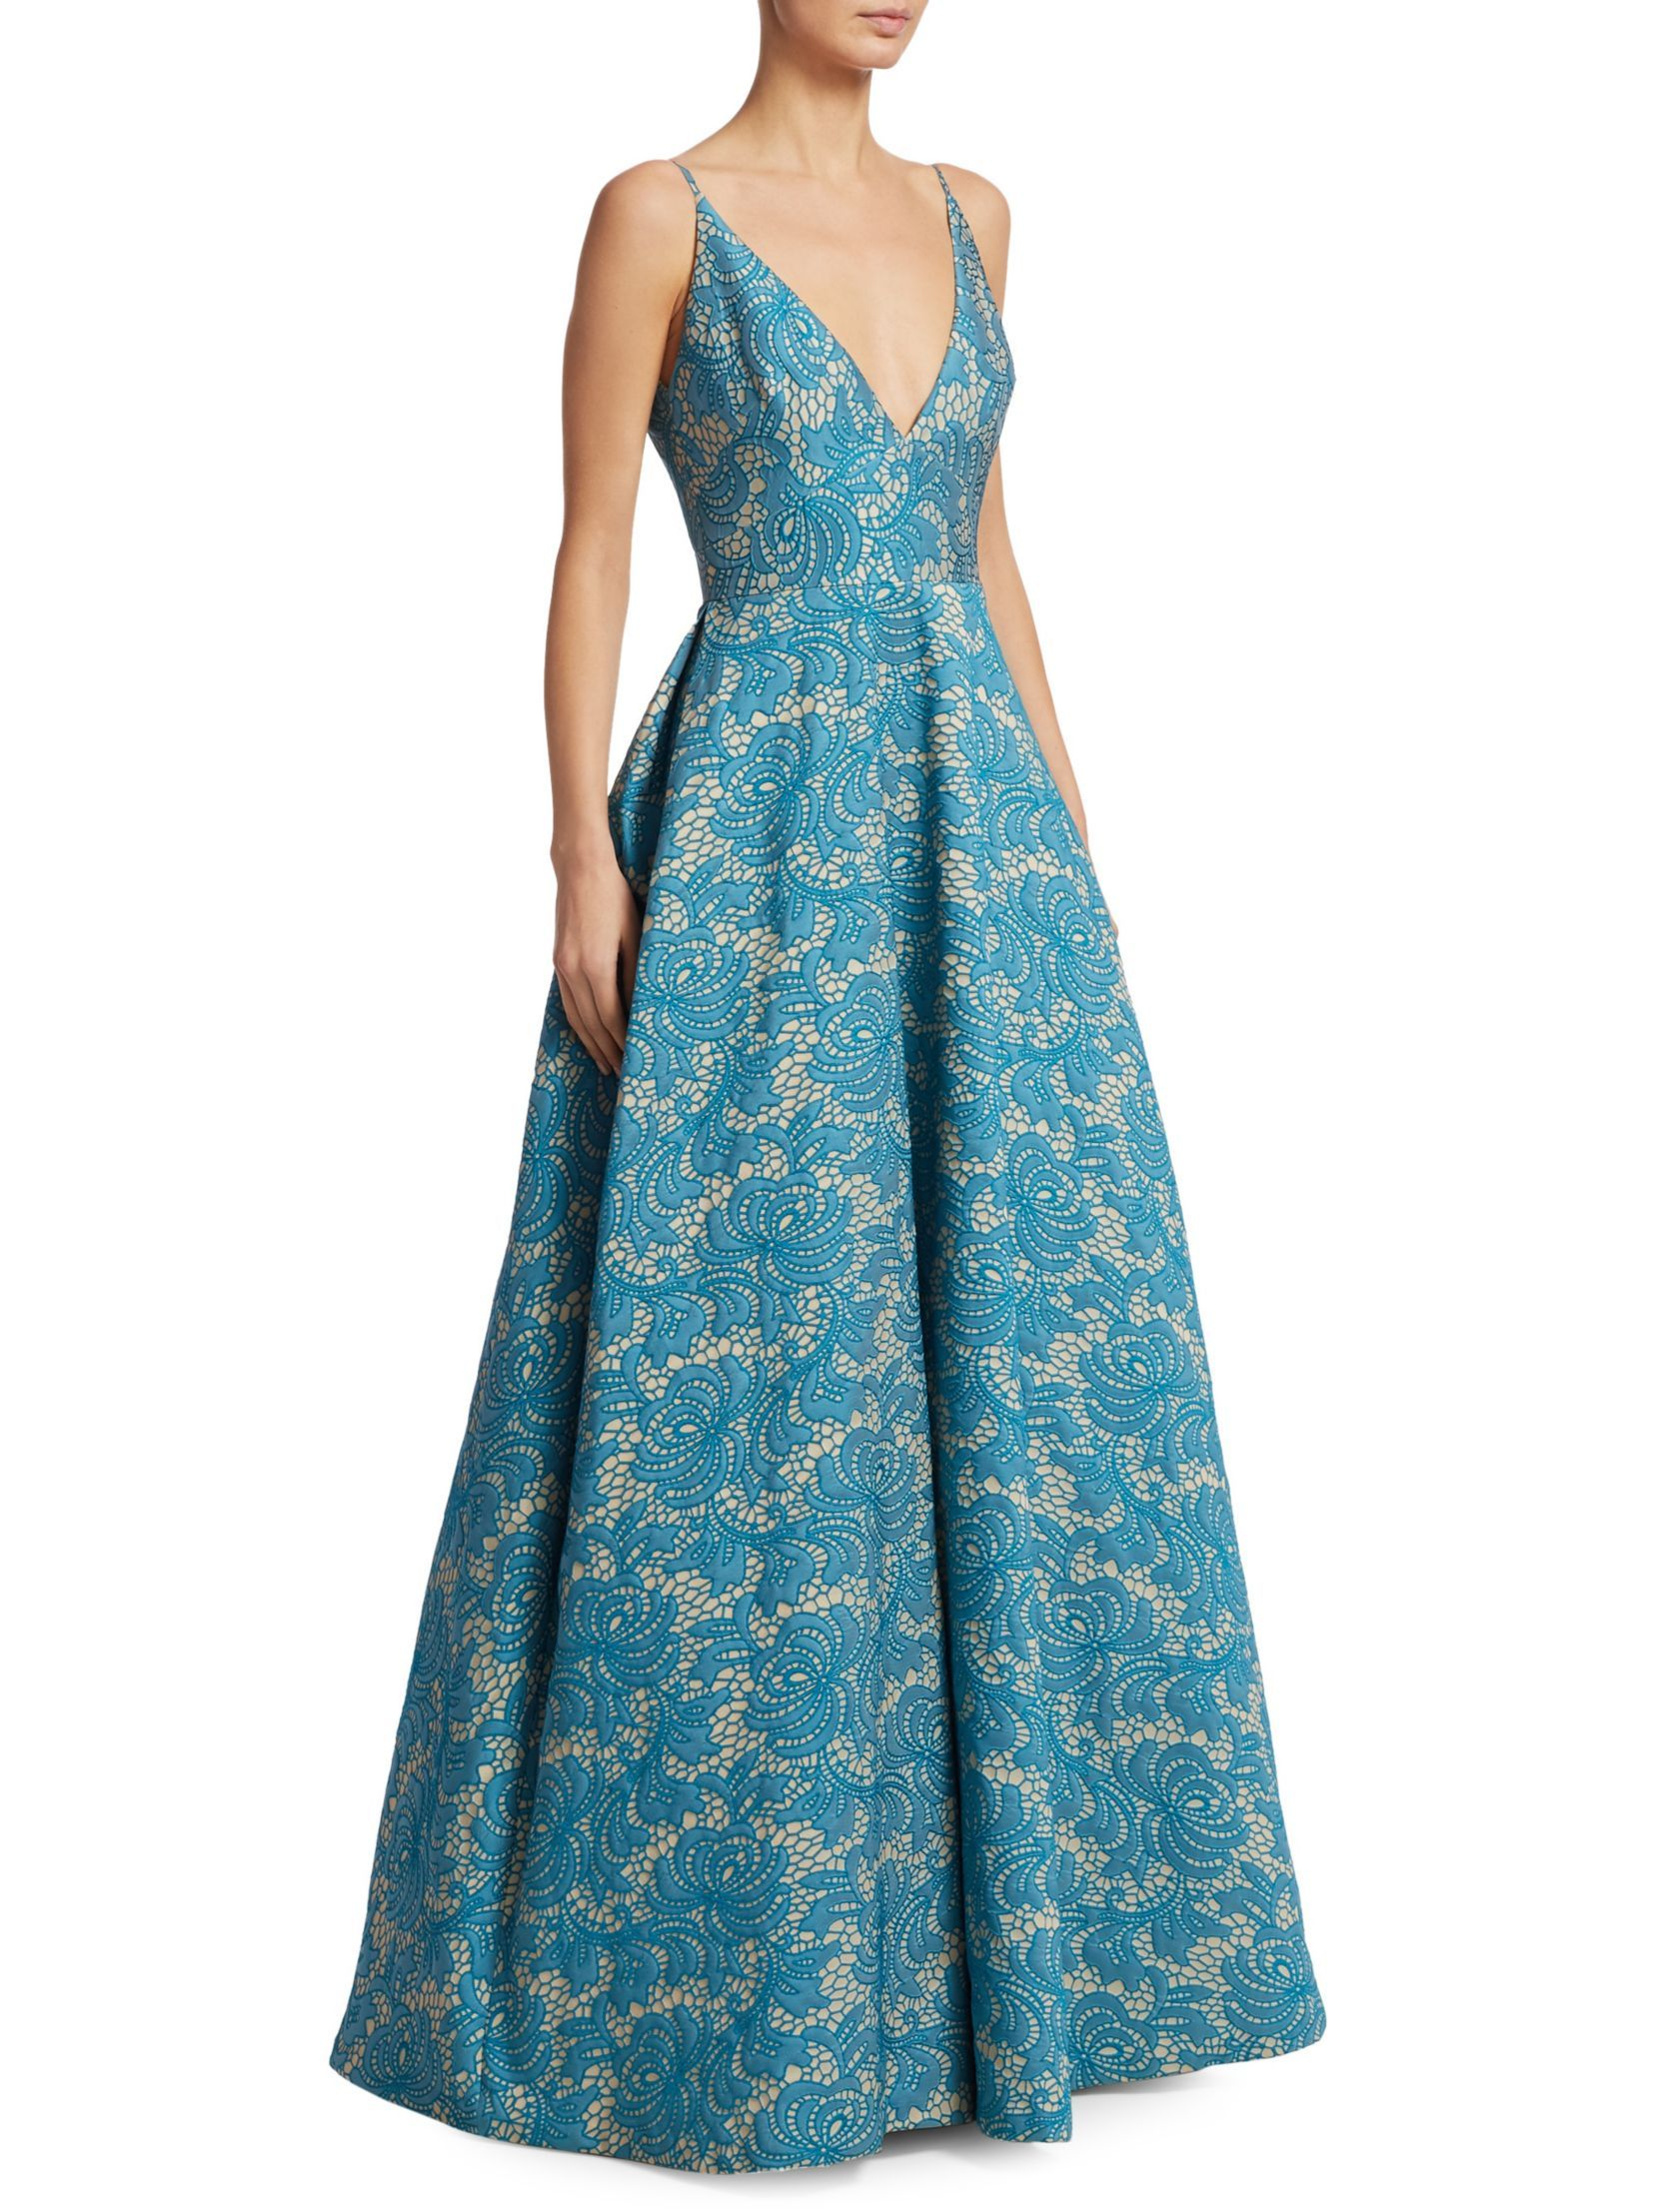 ML Monique Lhuillier Floral Ballgown | Dresses | Pinterest | Monique ...